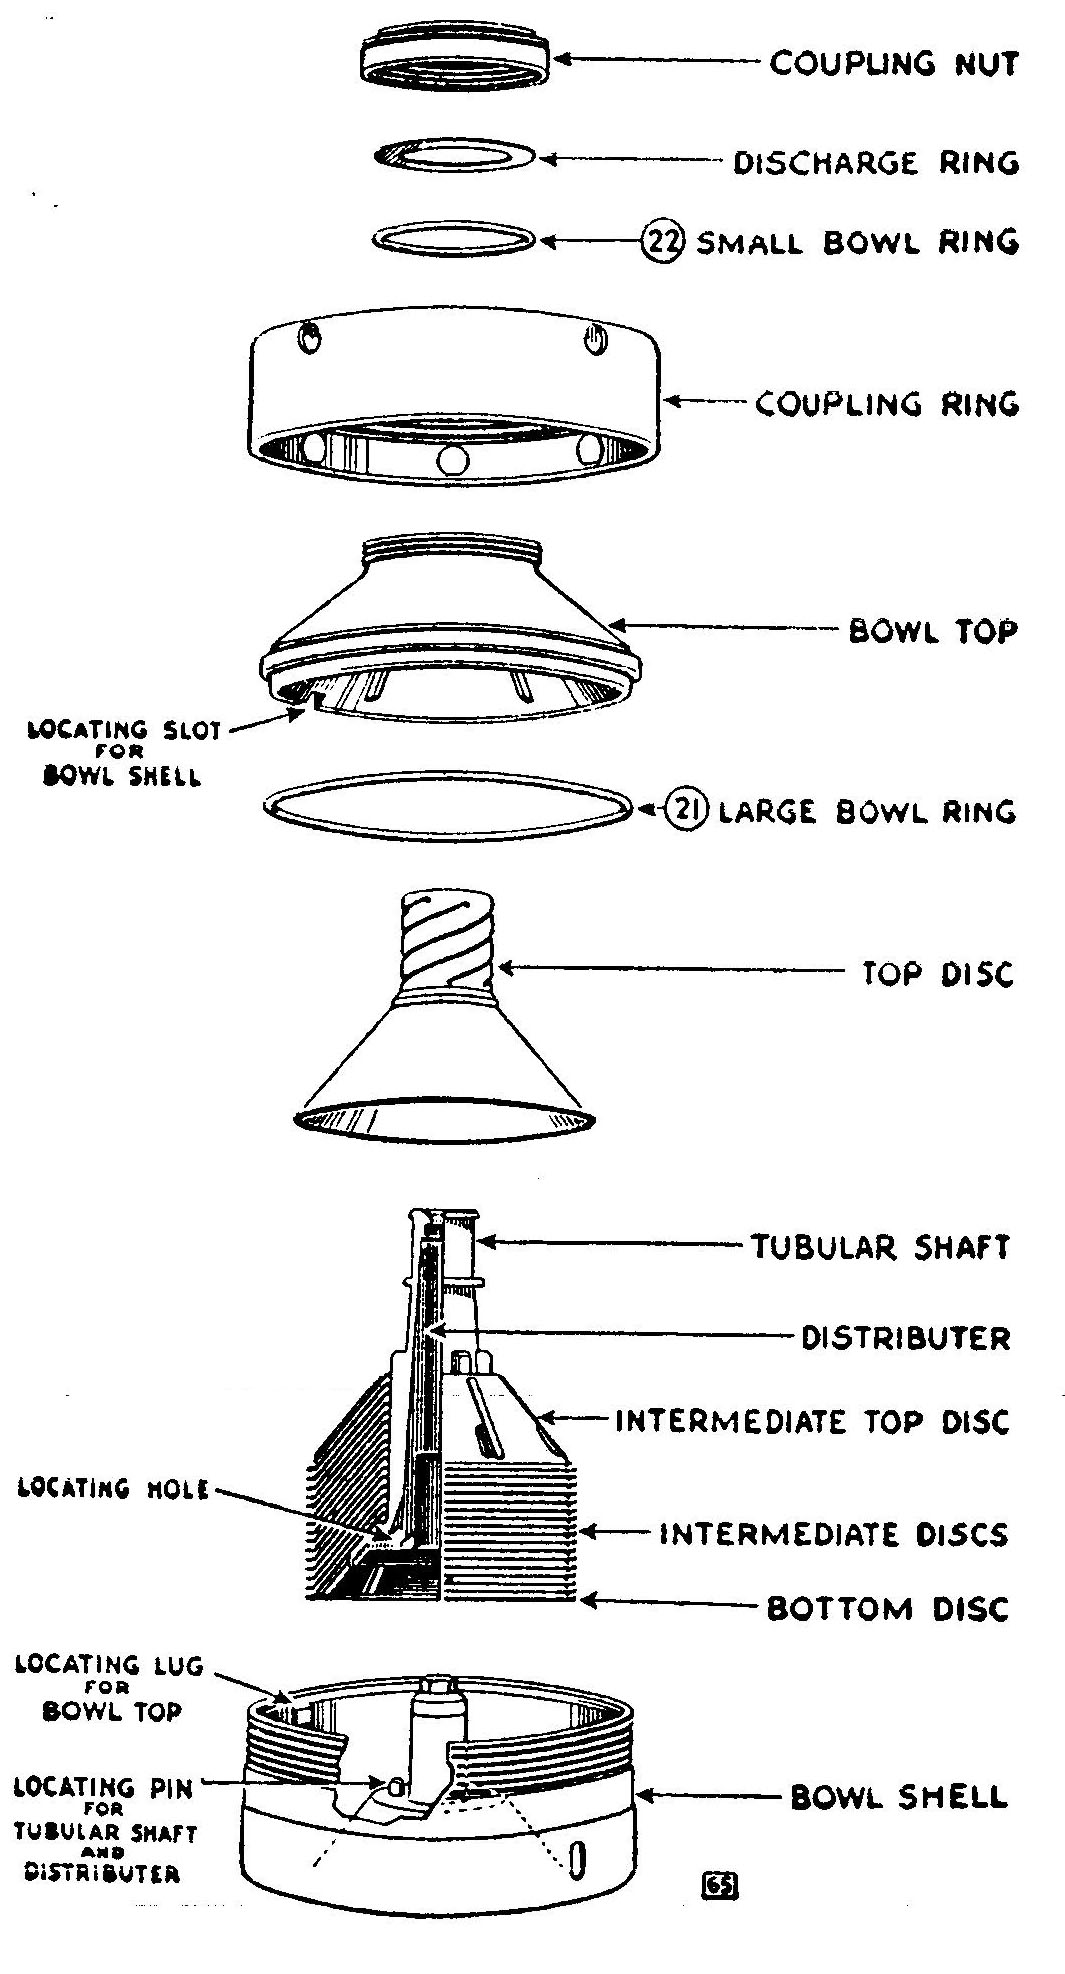 Lube Oil Purifier Bowl: Exploded View